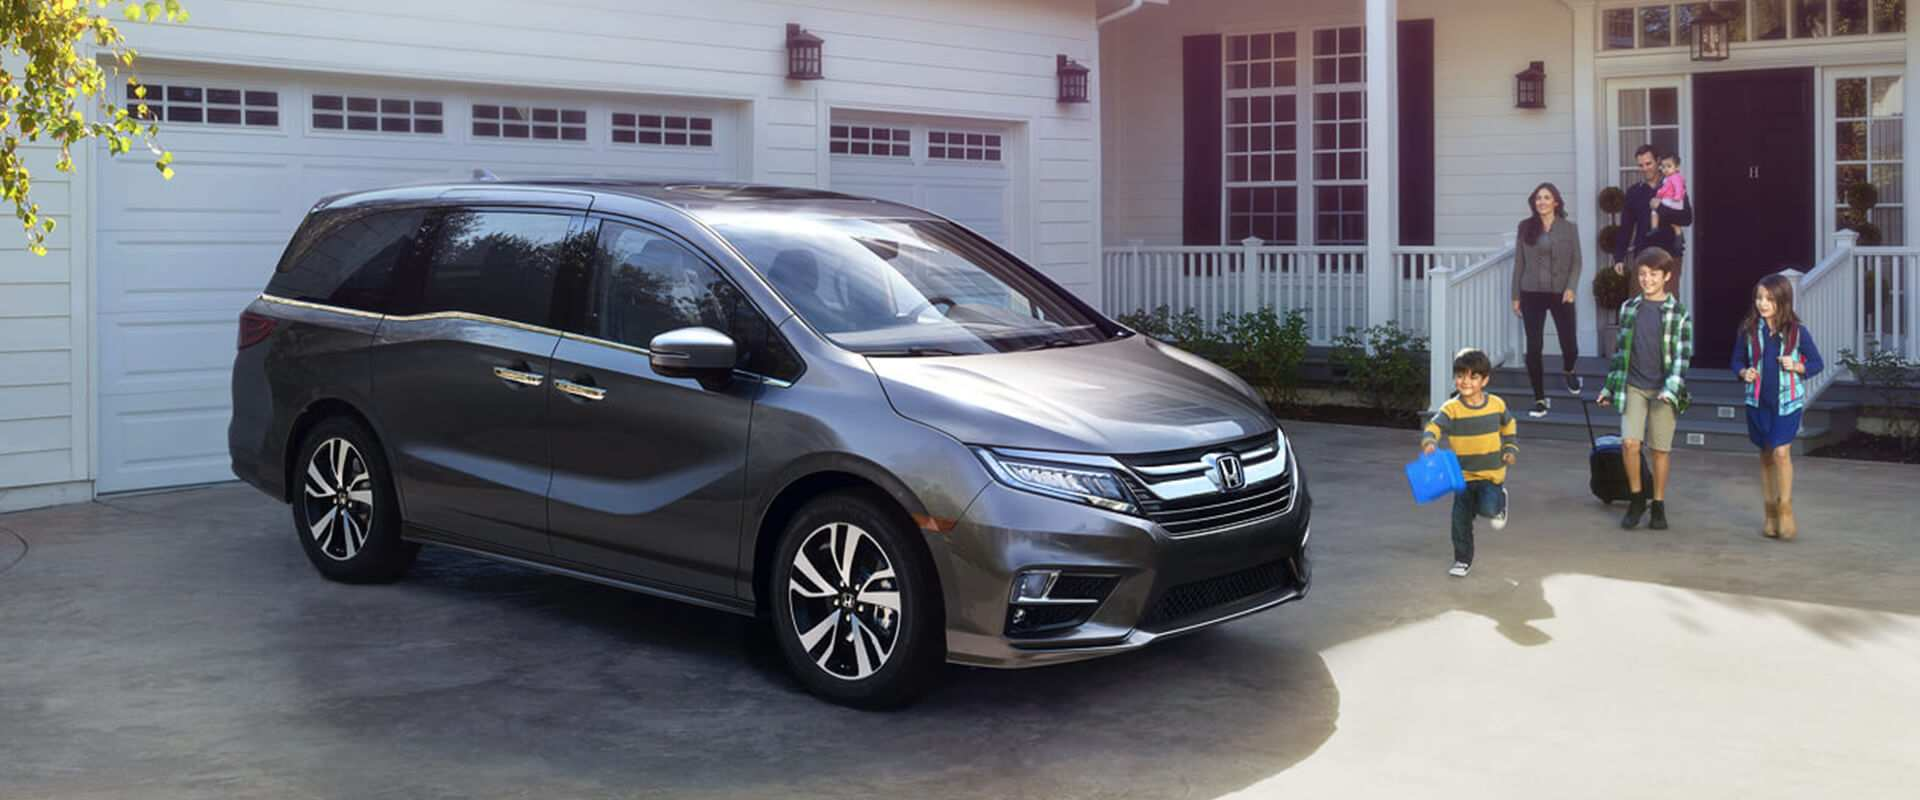 21 All New 2019 Honda Odyssey Redesign